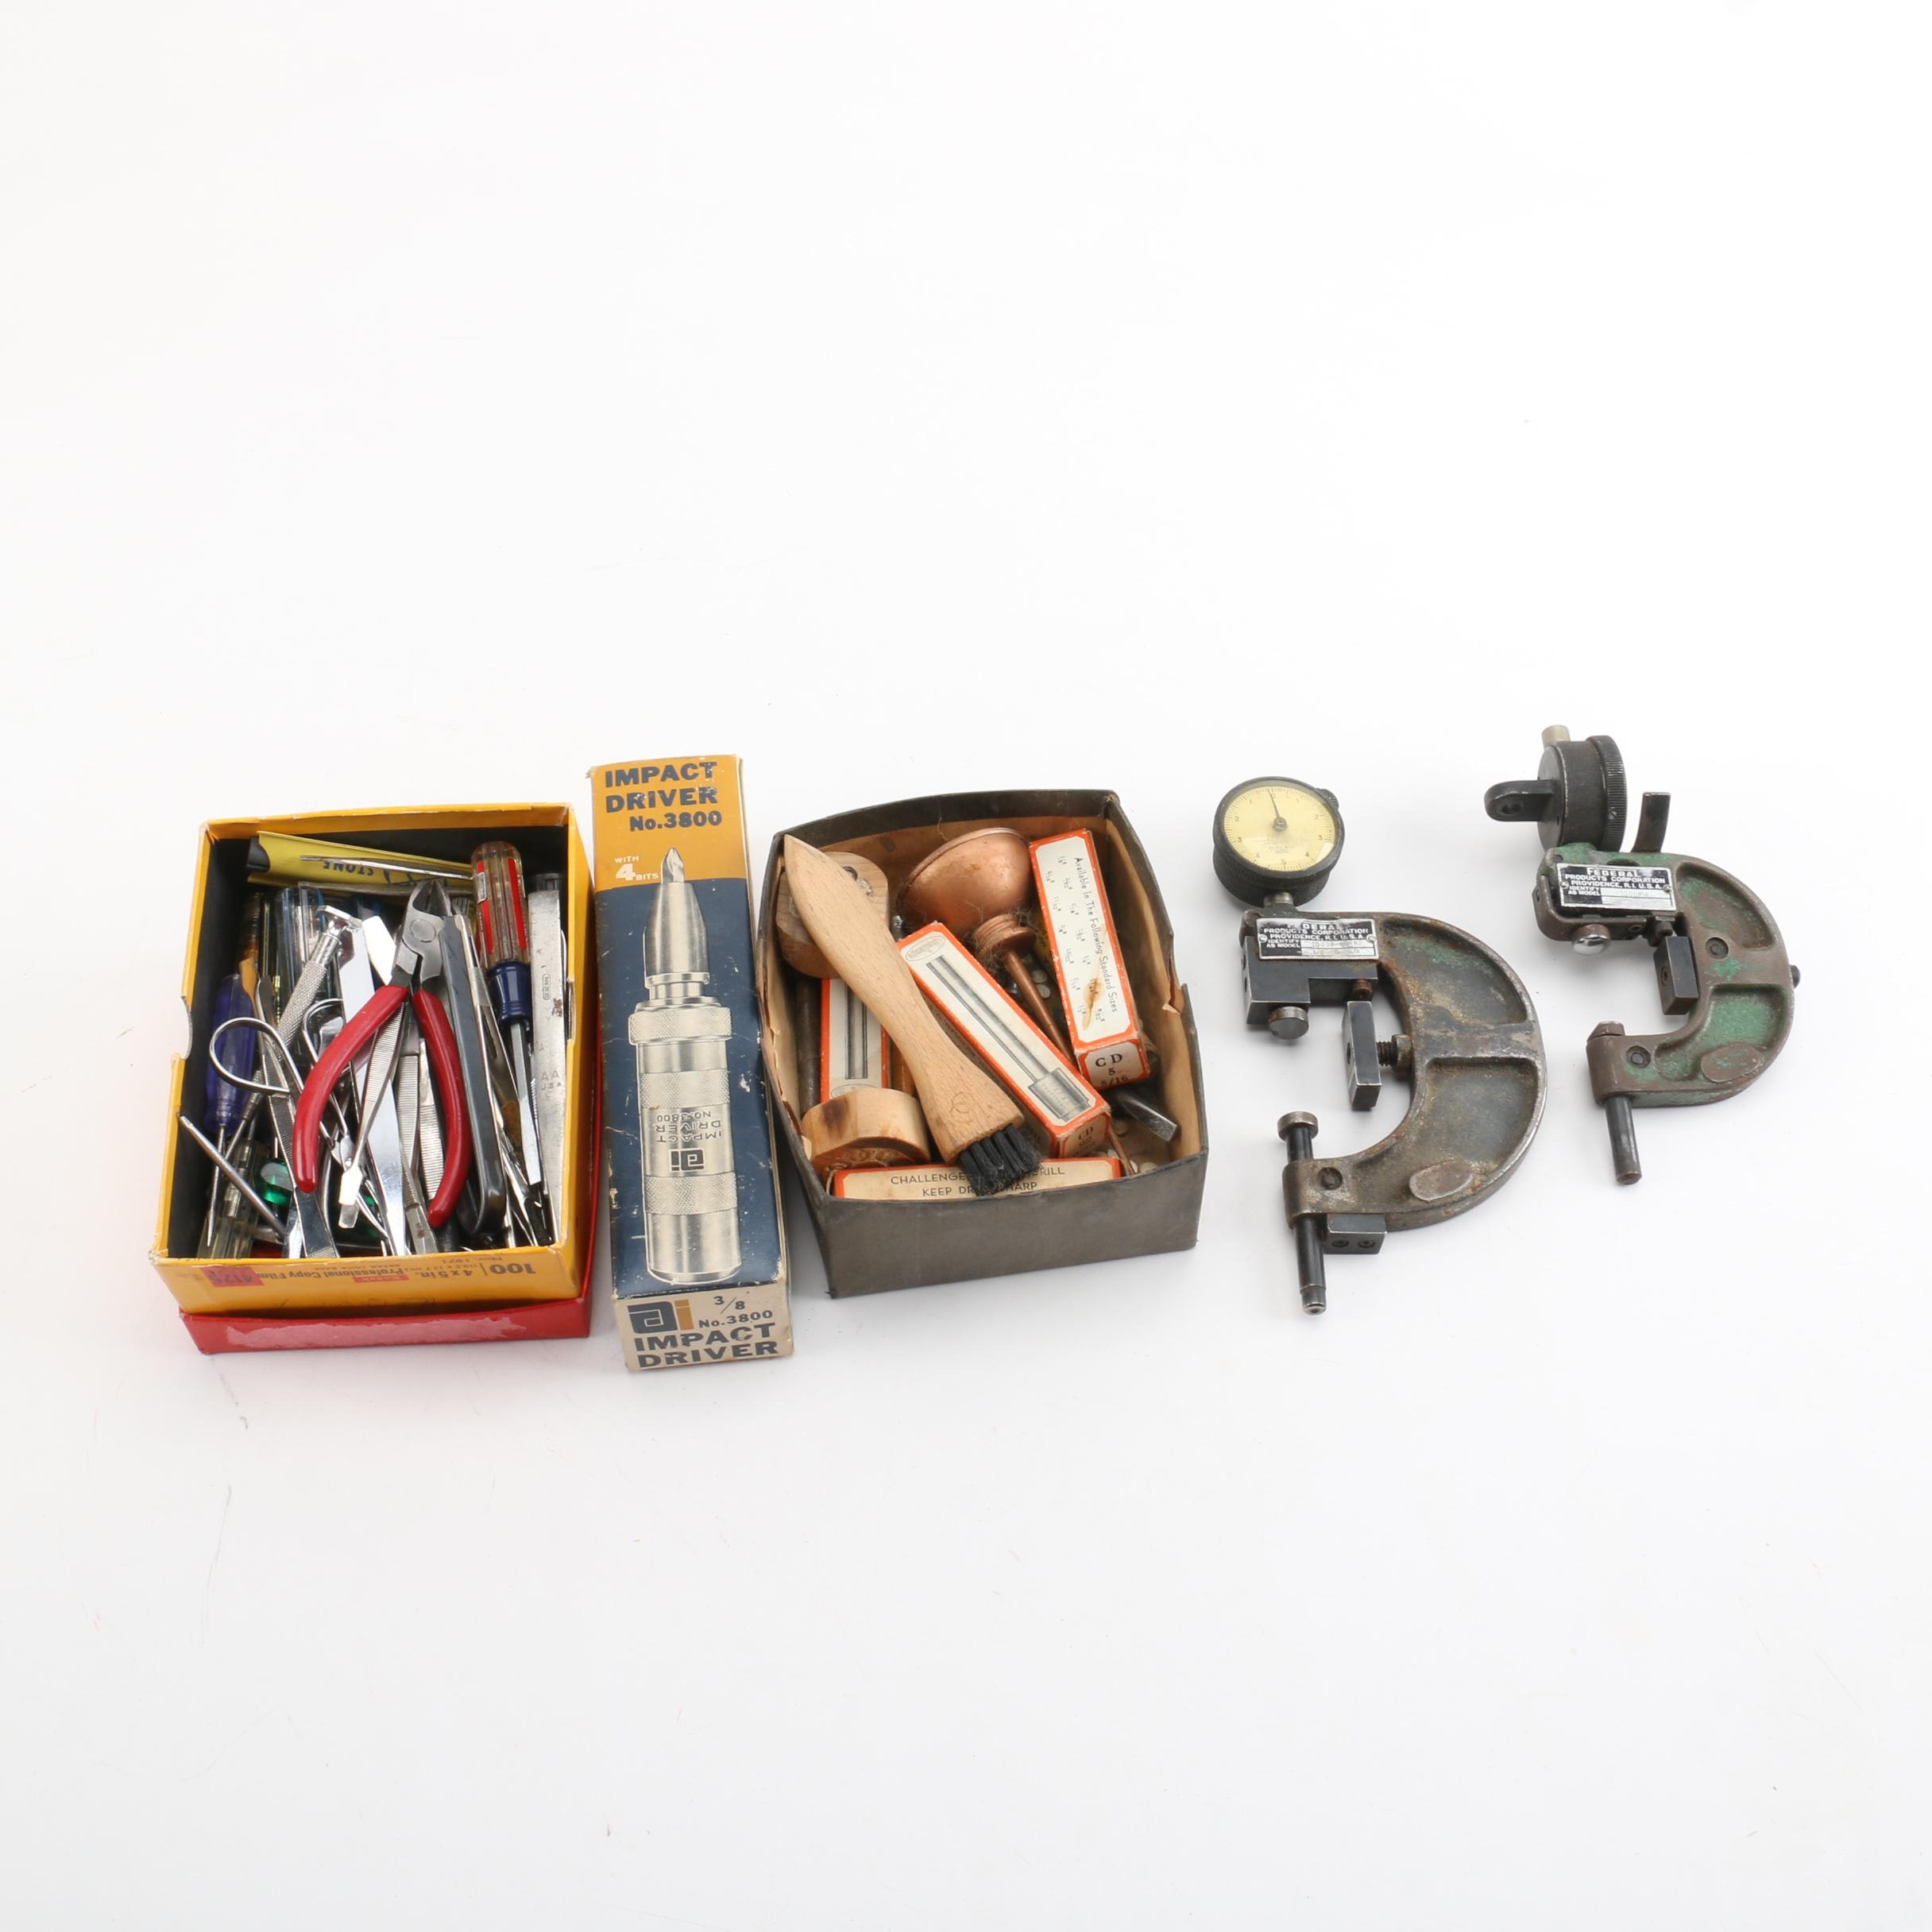 Vintage Federal Snap Gauges and Other Hand Tools